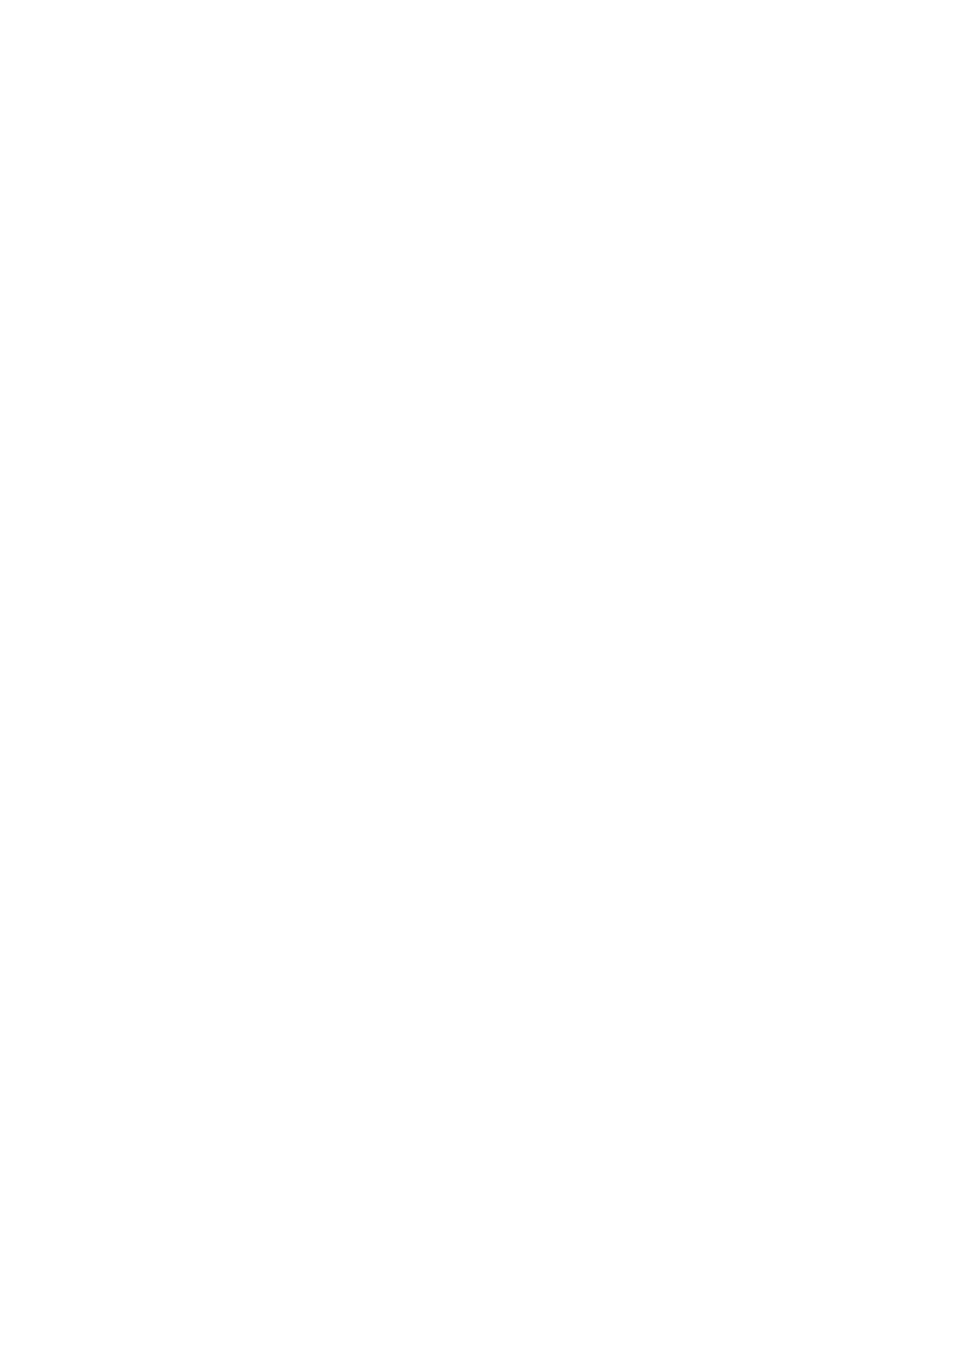 motorola minitor v user manual page 11 17 original mode rh manualsdir com Minitor V Accessories Minitor V Accessories